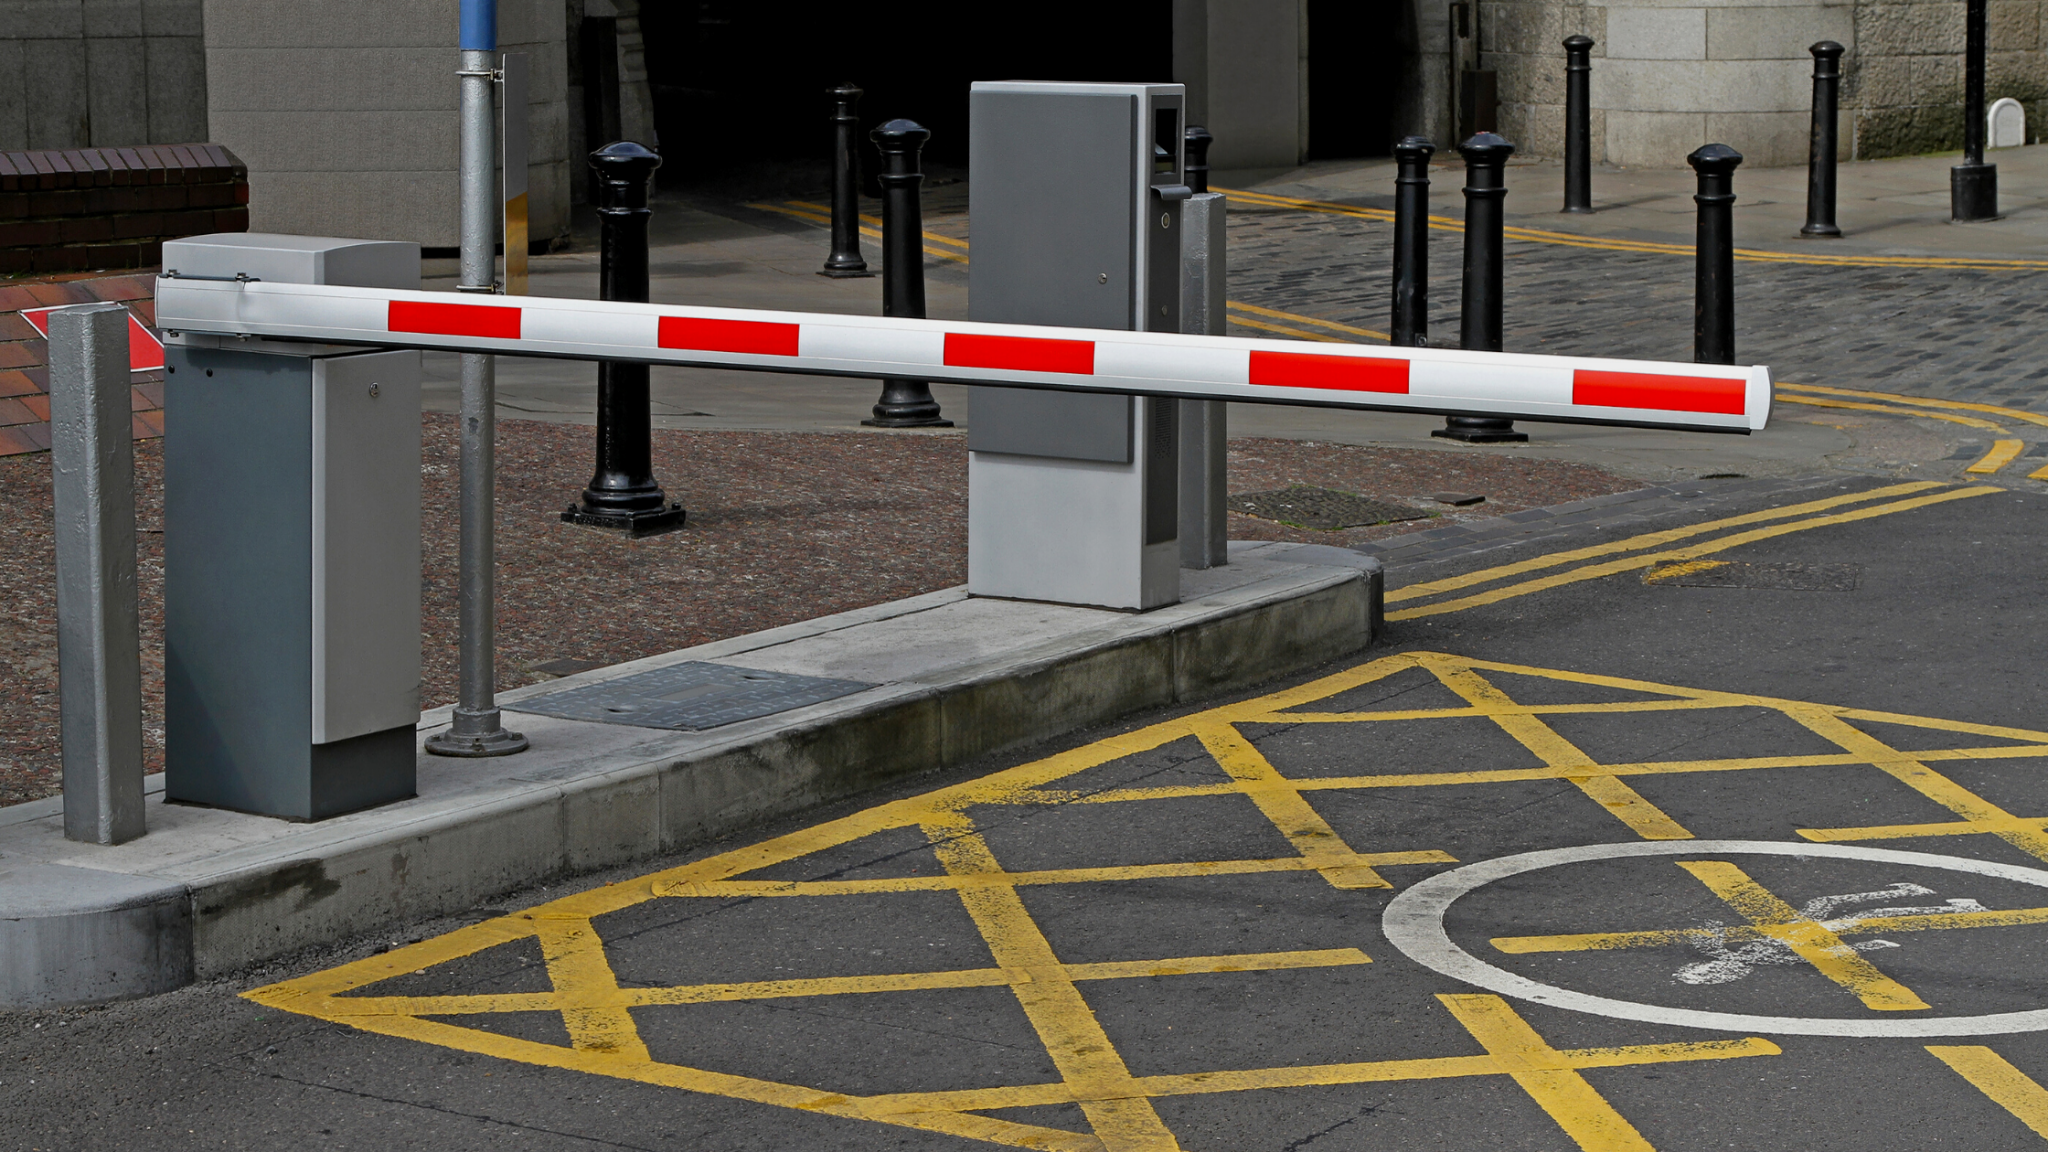 How physically secure is your business